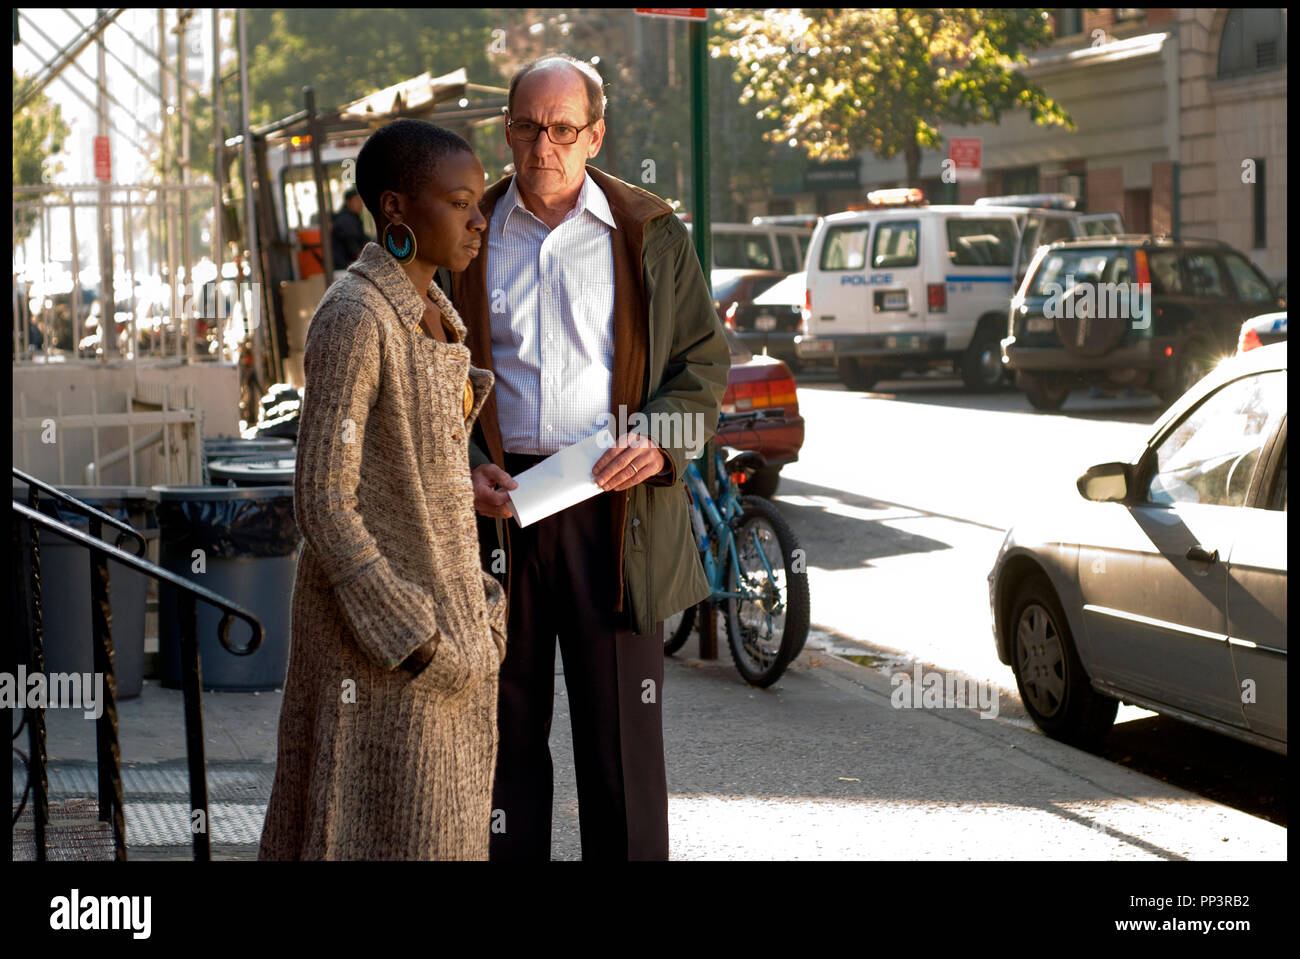 Prod DB C Next Wednesday Productions DR THE VISITOR De Thomas McCarthy 2007 USA Avec Danai Jekesai Gurira Et Richard Jenkins Duo Mixte Pensif